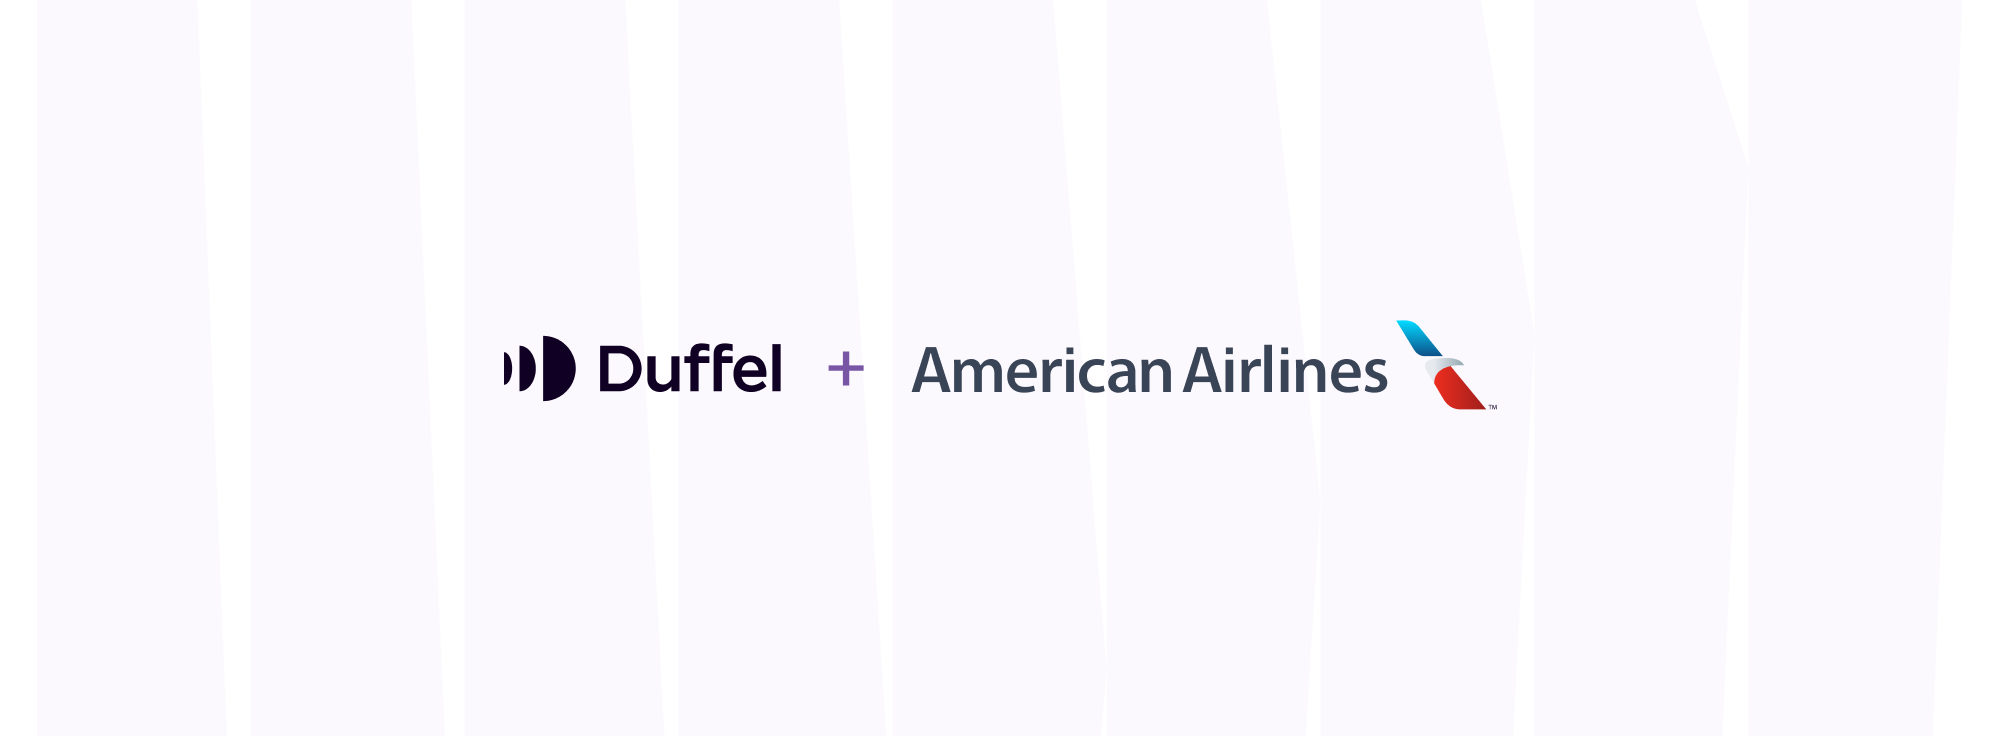 Duffel and American Airlines logos